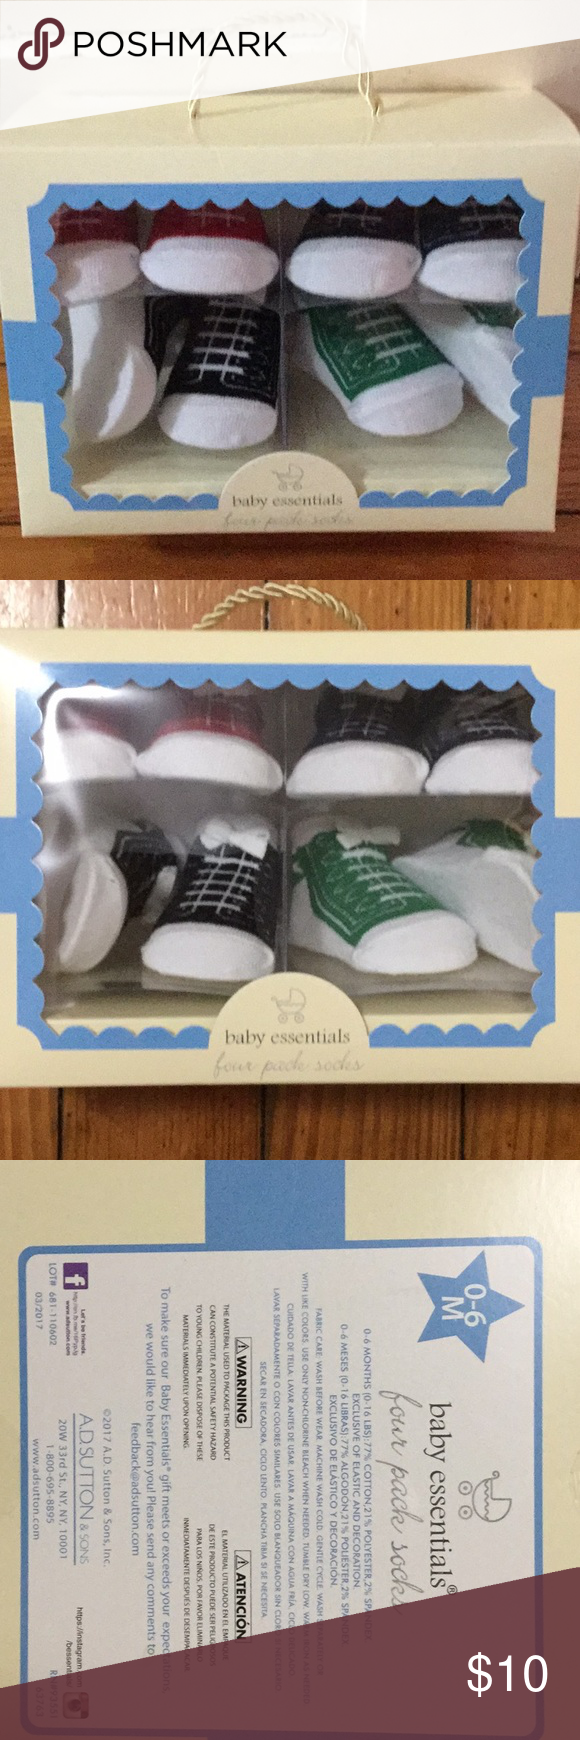 Nwt Four Pack 0 6m Baby Socks Red Green And Socks